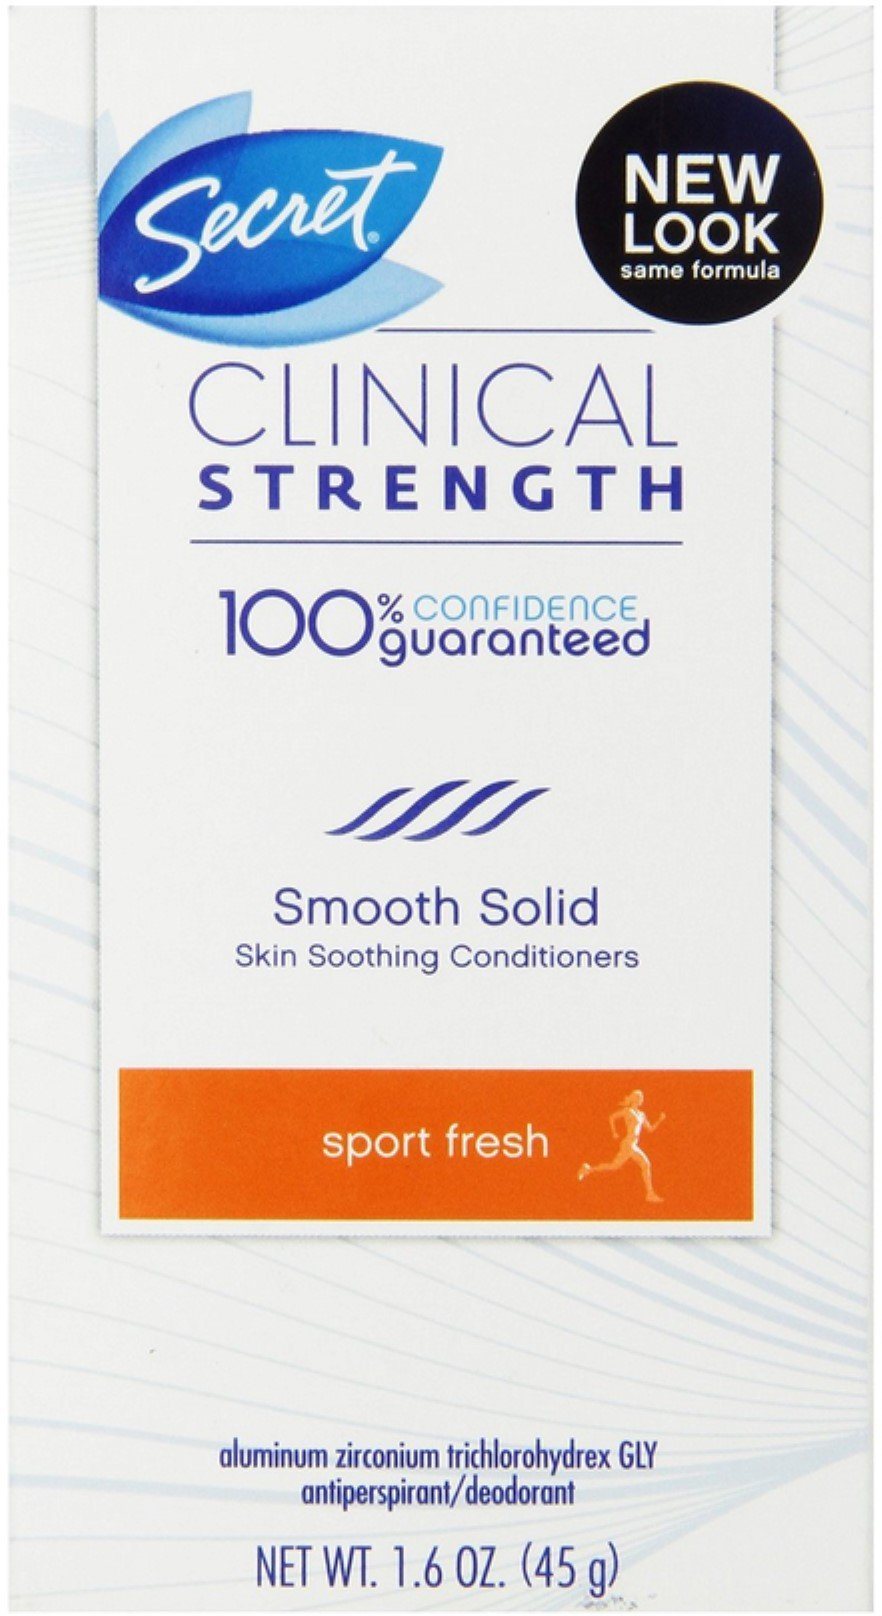 Sec Clncl Sld Frsh Martho Size 1.6z Secret Clinical Strength Marathon Fresh Scent Sport Antiperspirant Deodoran by Secret (Image #1)